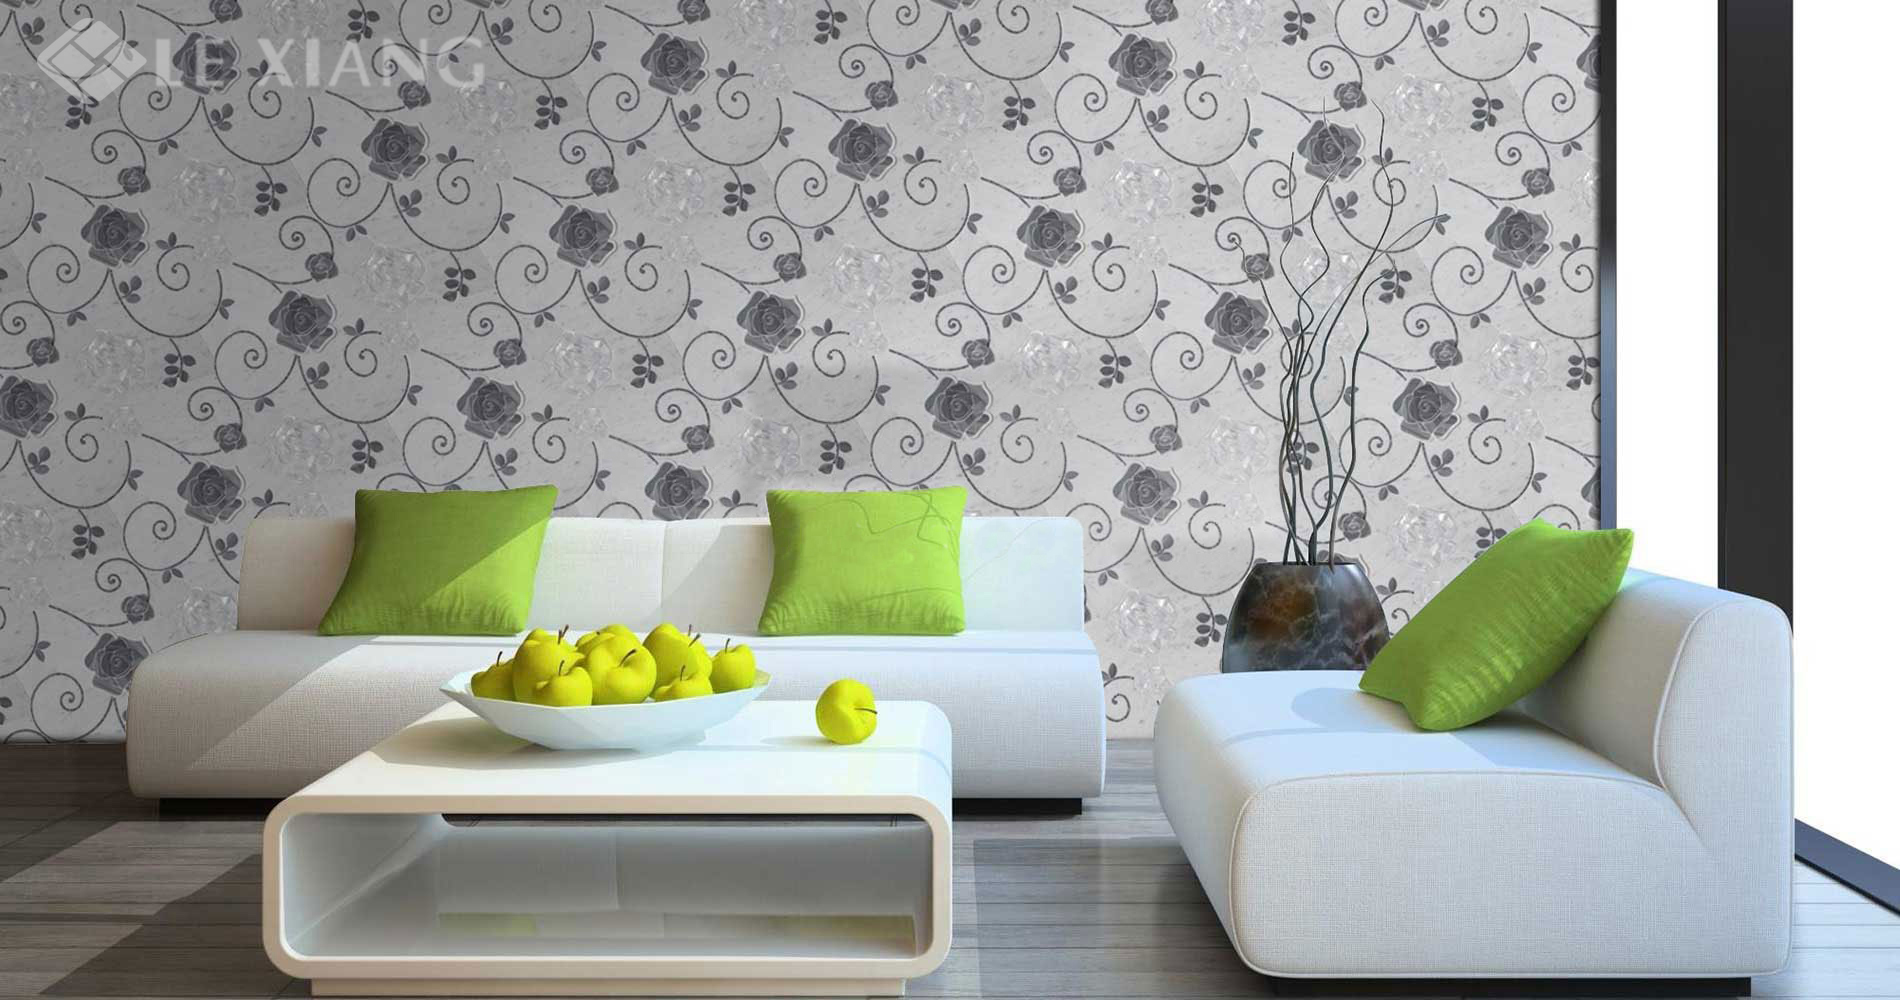 Camellia-WaterJet-Cut-Mosaic-Stone-Tile-For-Bothroom-Wall-7